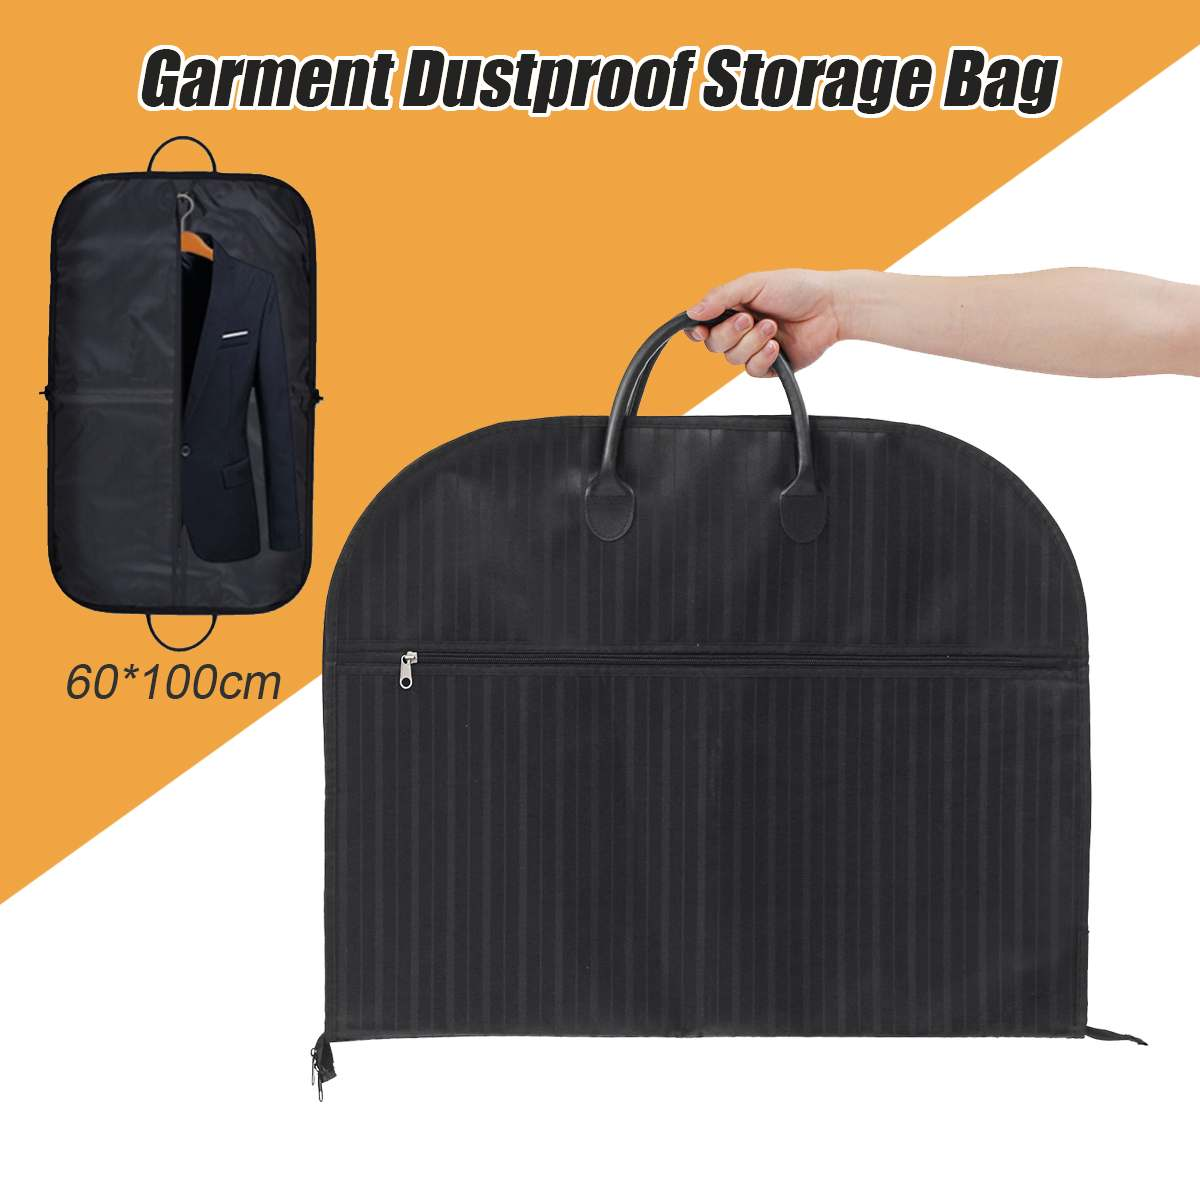 60*100cm Dust-proof Dress Clothes Cover Case Suit Dress Garment Bag Storage Travel Carrier Coat Jacket Home Zipper Protector